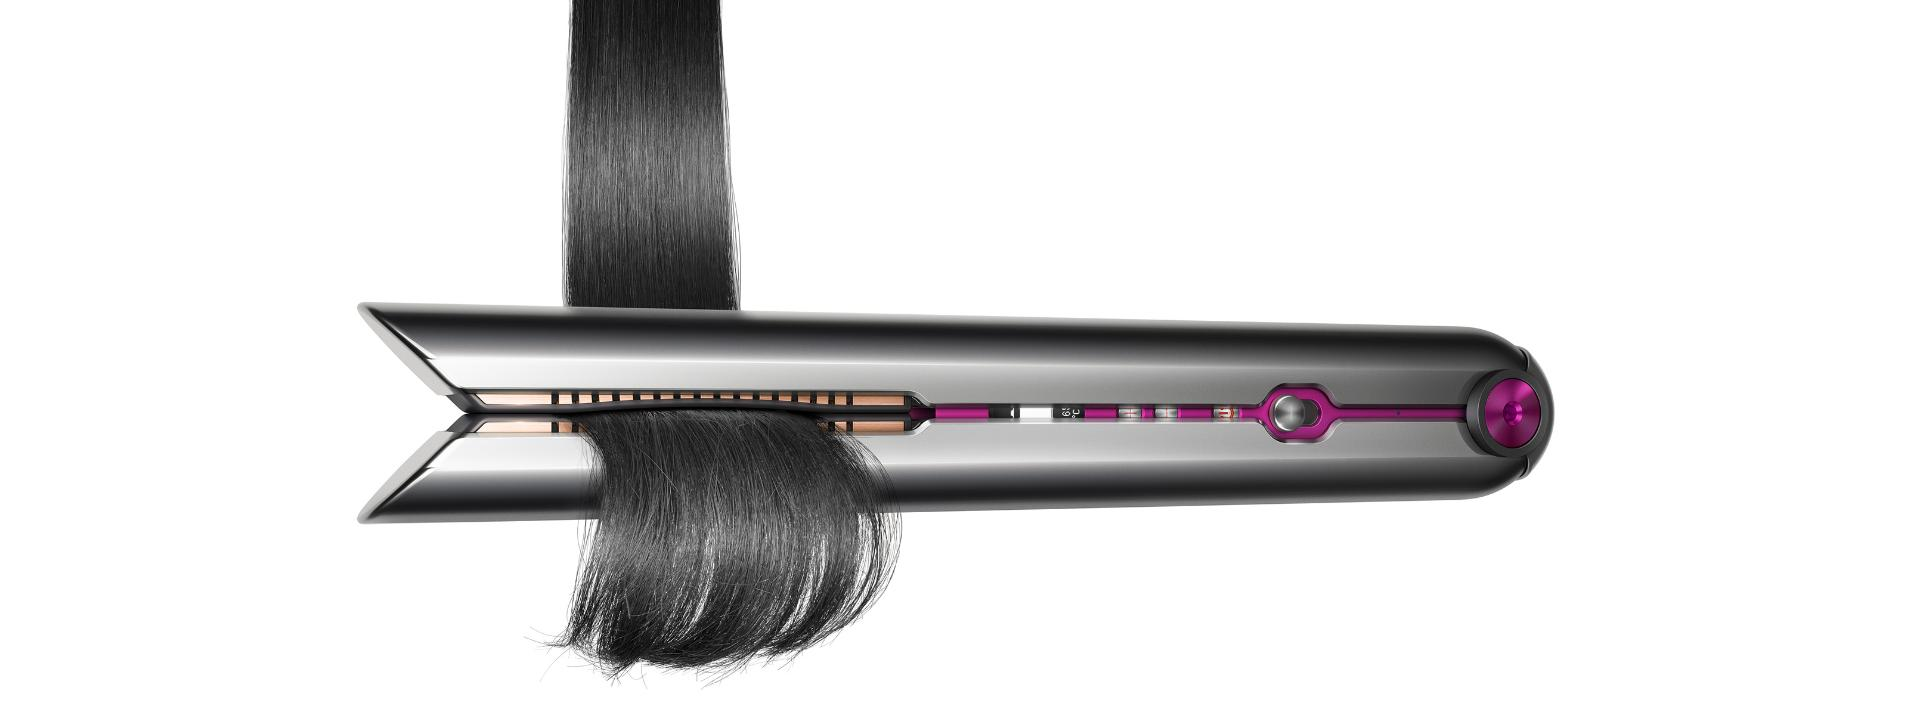 The Dyson Corrale straightener pulling down on a beautifully styled tress of hair